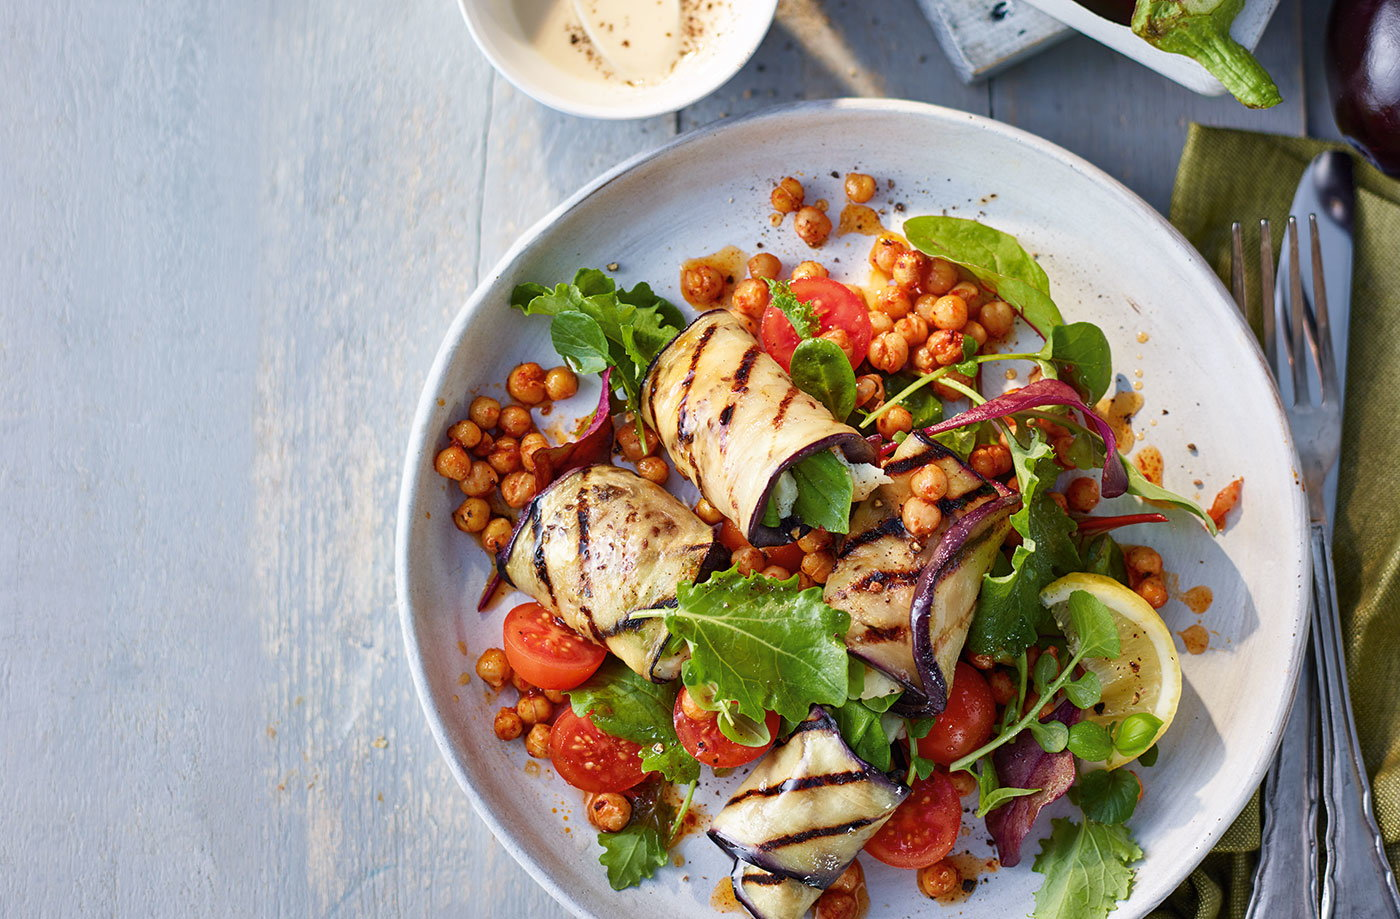 Aubergine and halloumi rolls with chickpea salad recipe